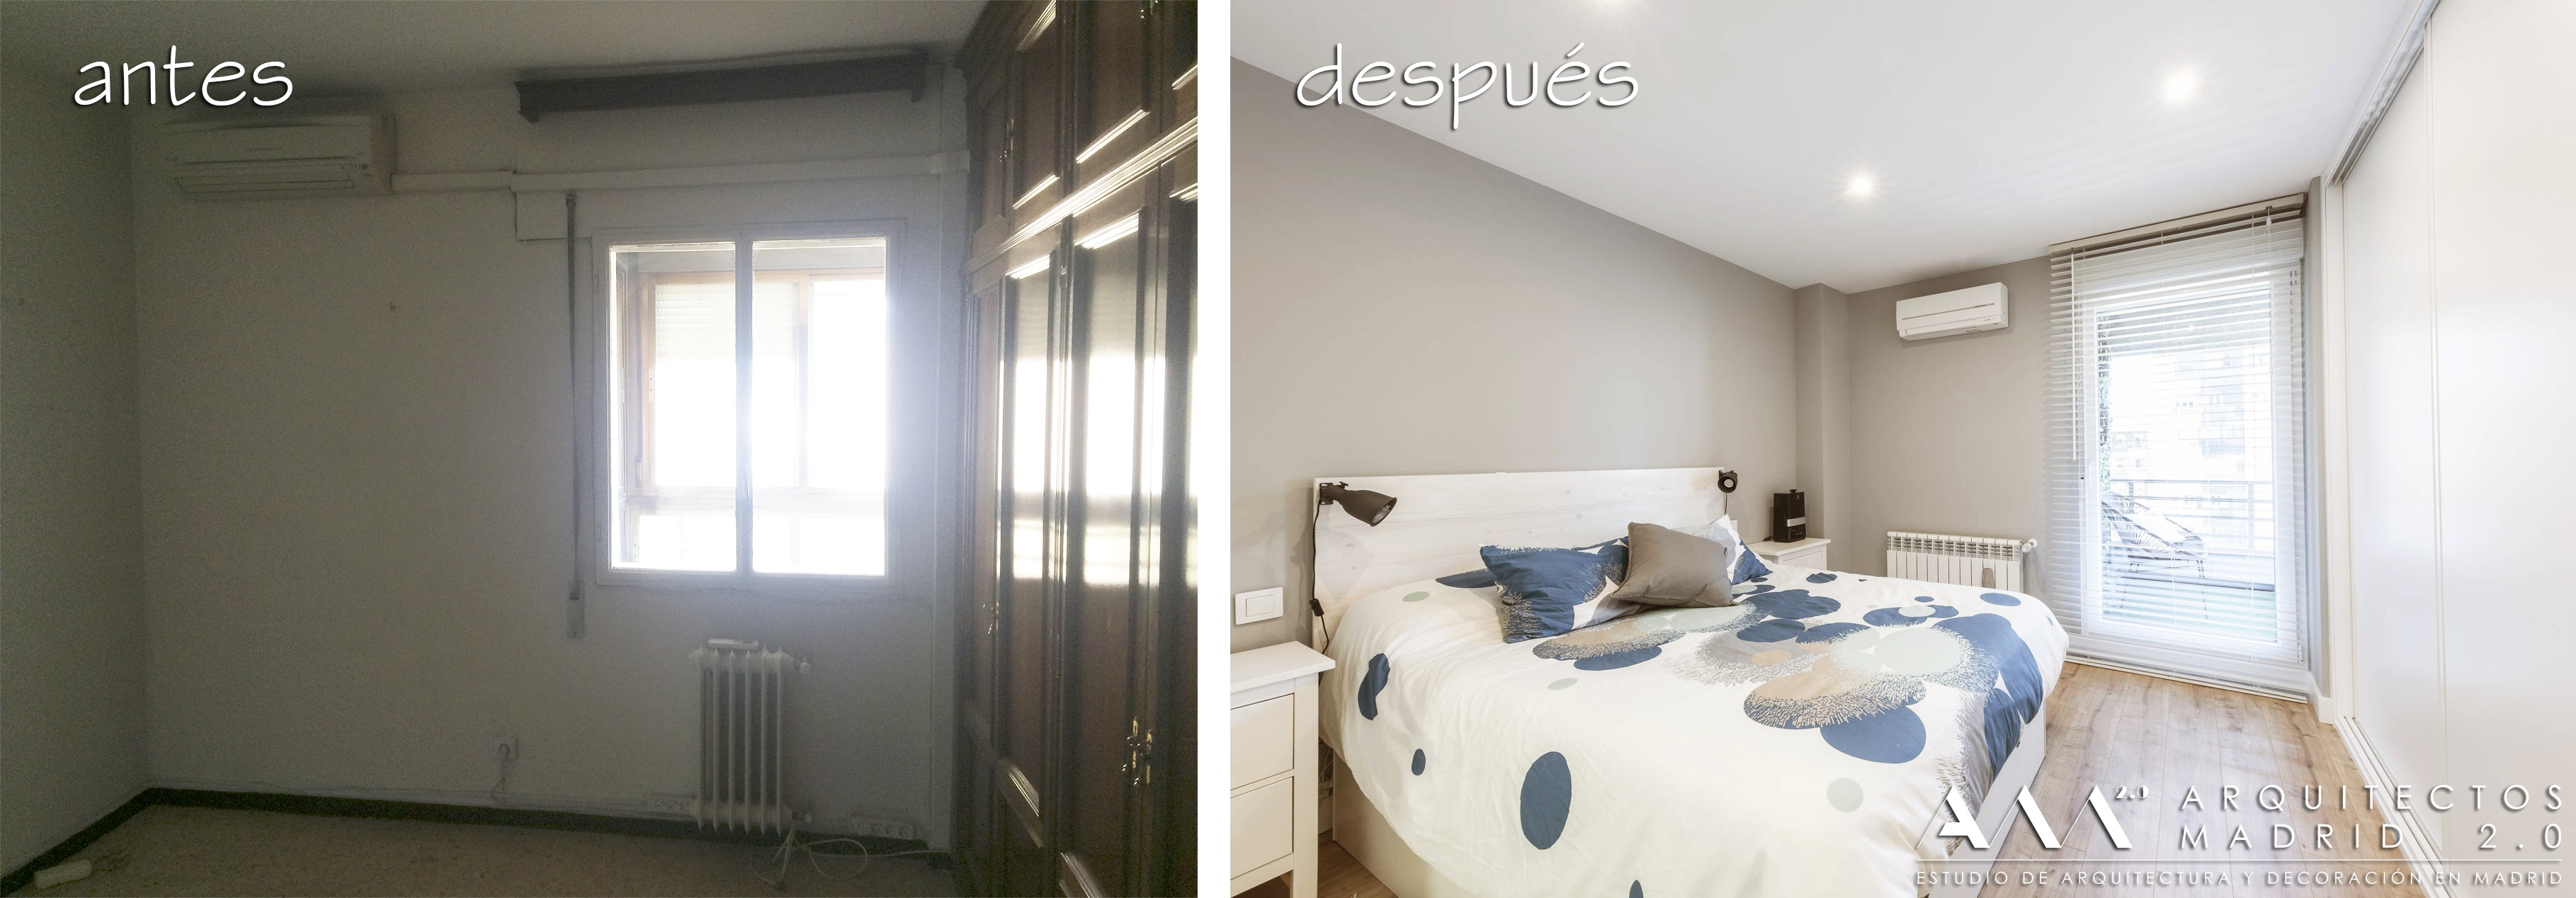 antes-despues-dormitorio-reforma-vivienda-housing-reform-architects-before-after-bedroom